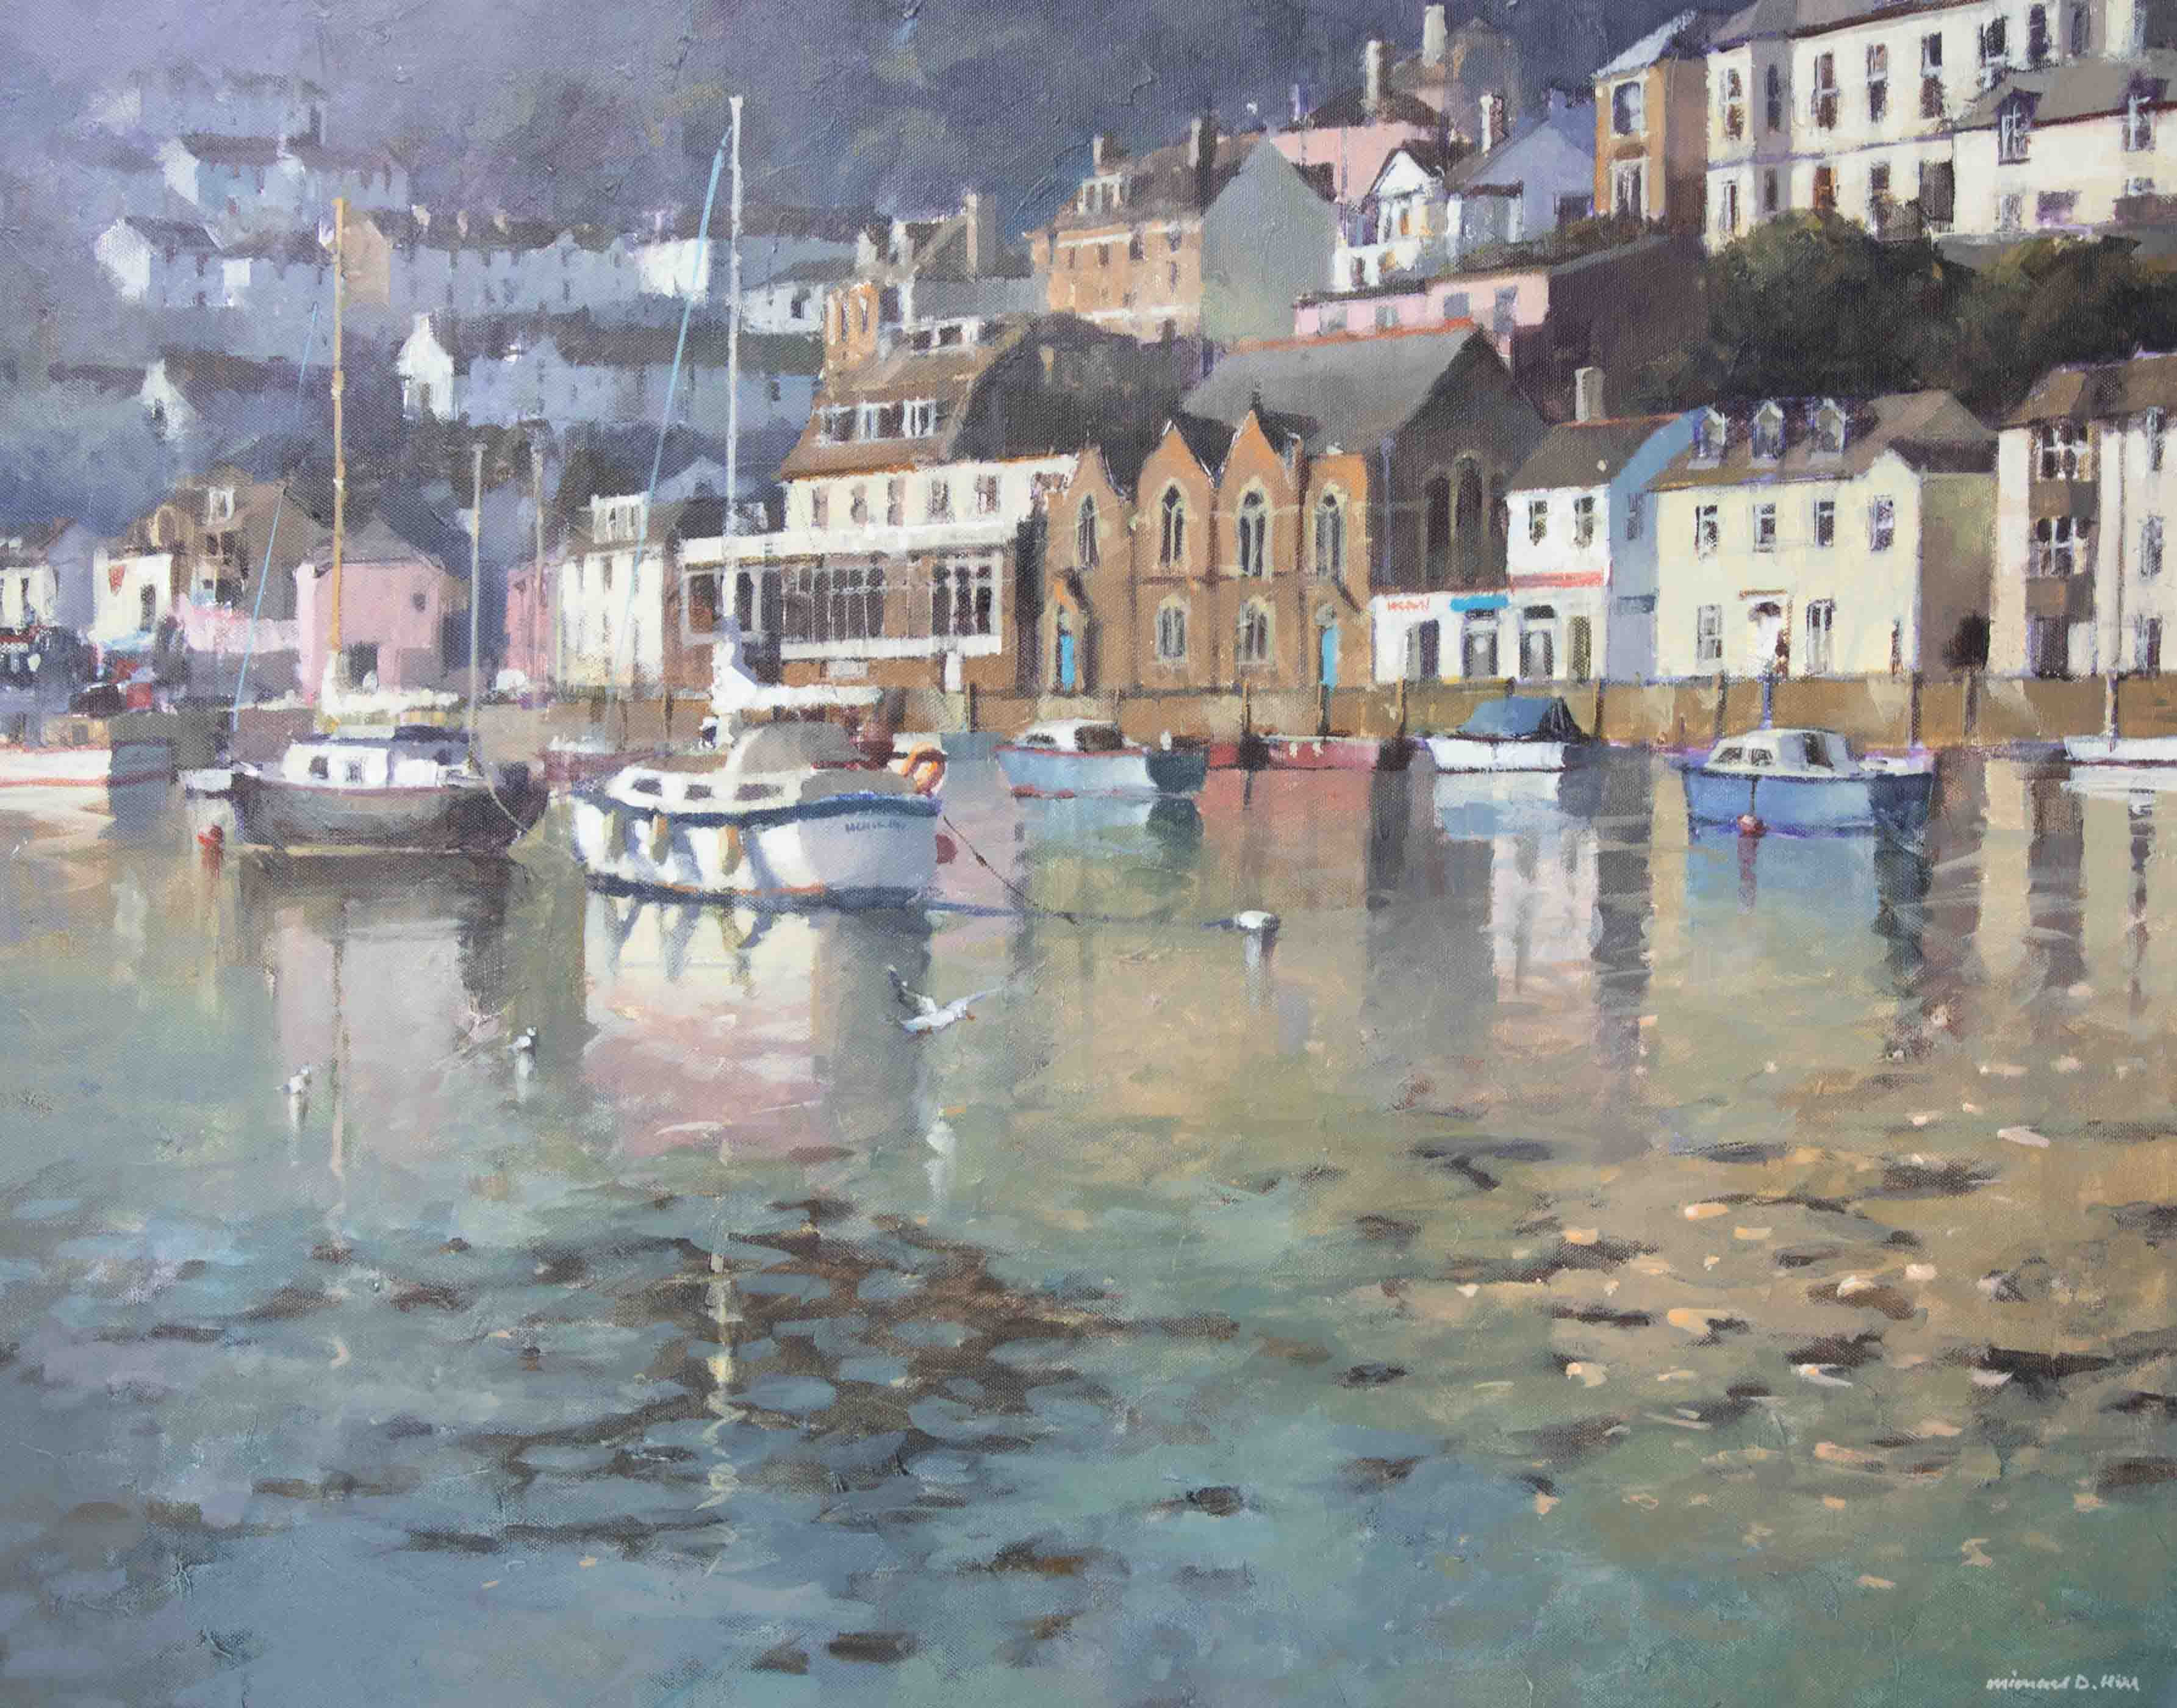 Michael D Hill, 'Harbour, West Looe' signed oil on canvas, 61cm x 76cm, framed. Michael Hill (born - Image 2 of 2